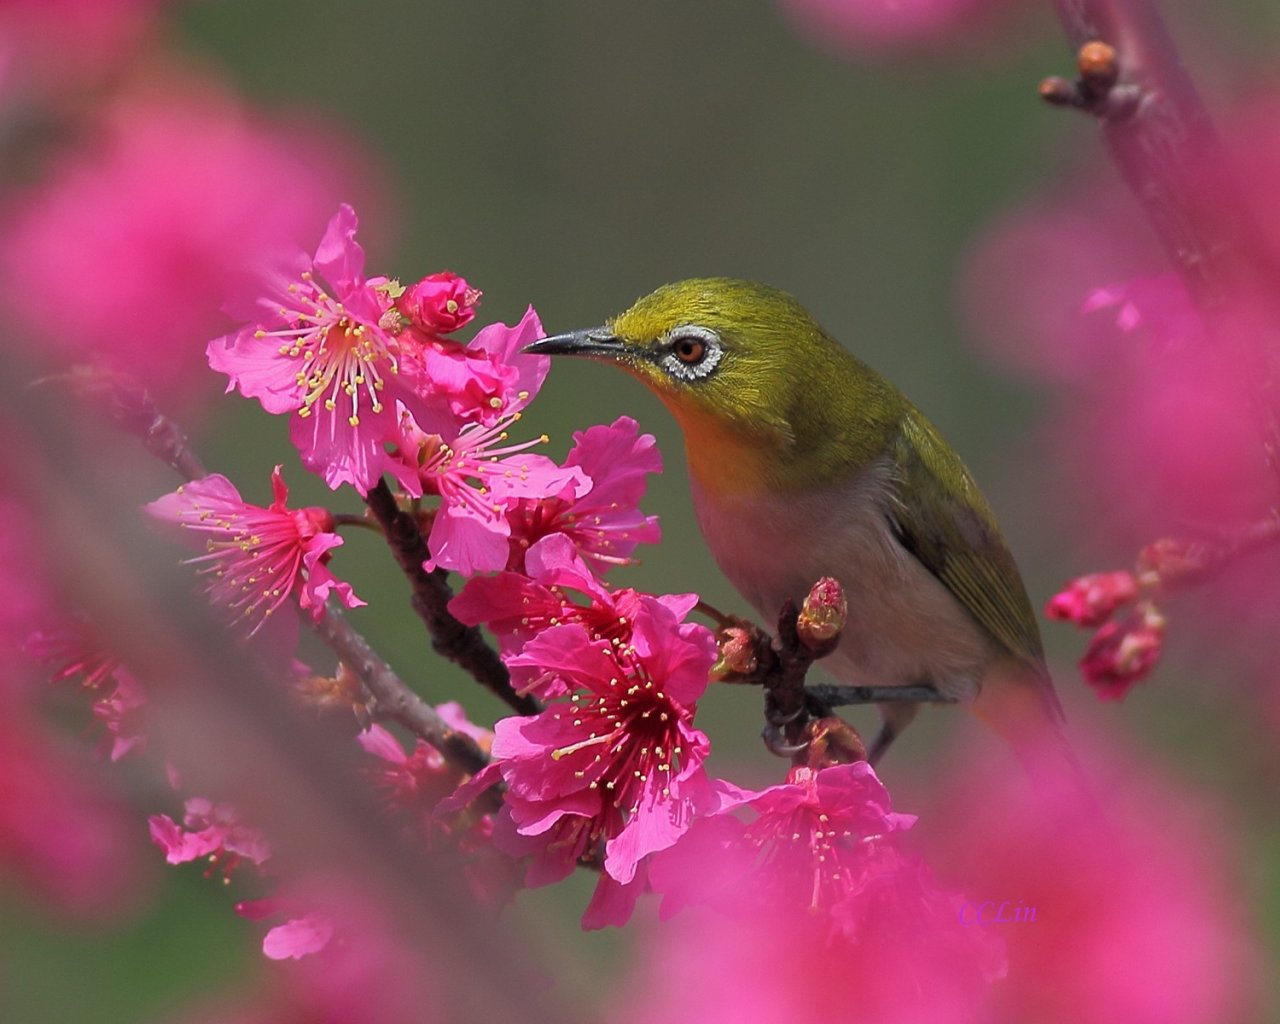 45+ Flowers and Birds Wallpaper on WallpaperSafari